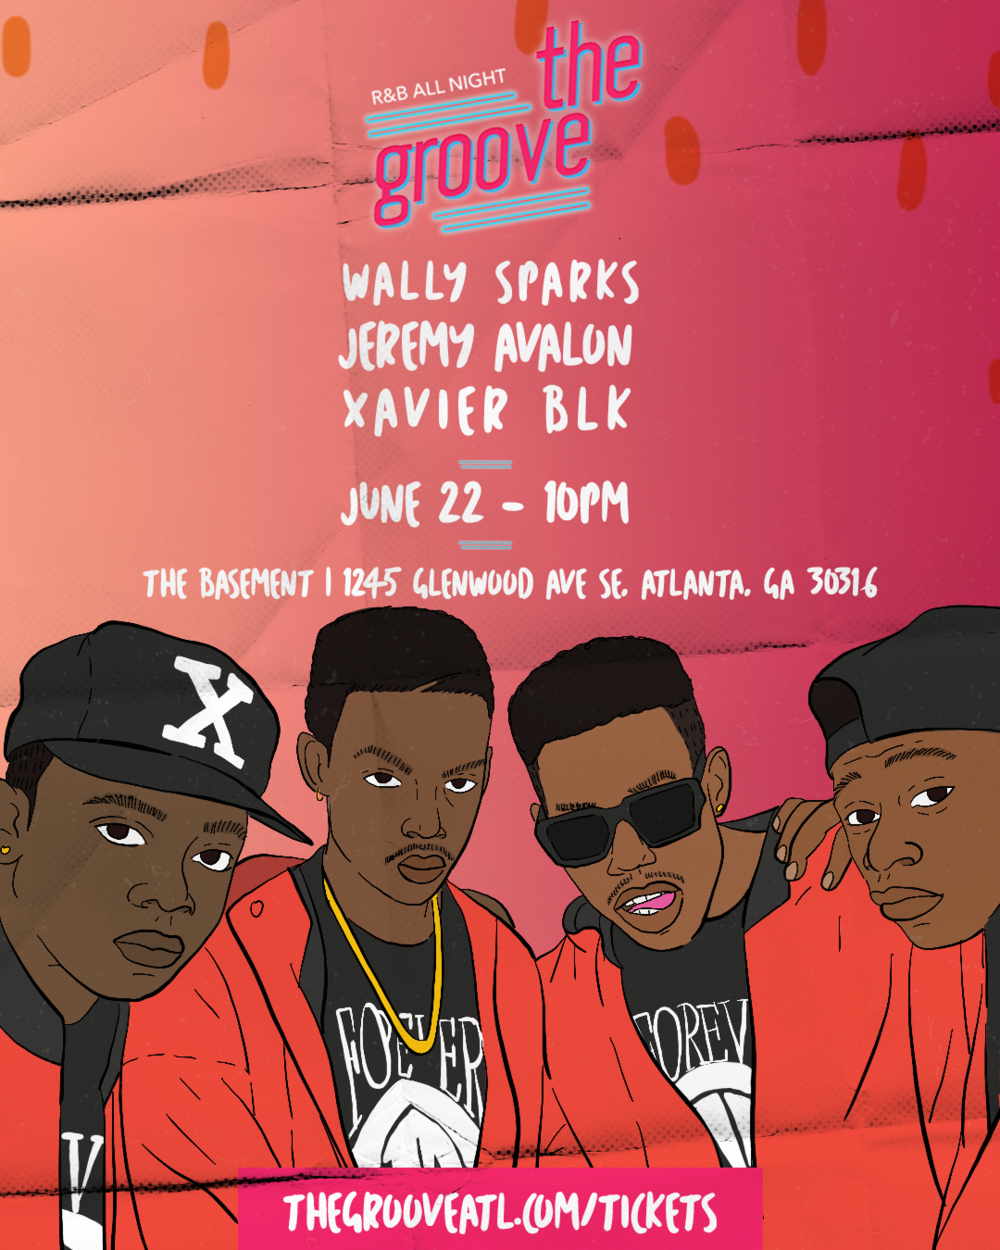 001-the-groove-jodeci-ig-feed-062218.png